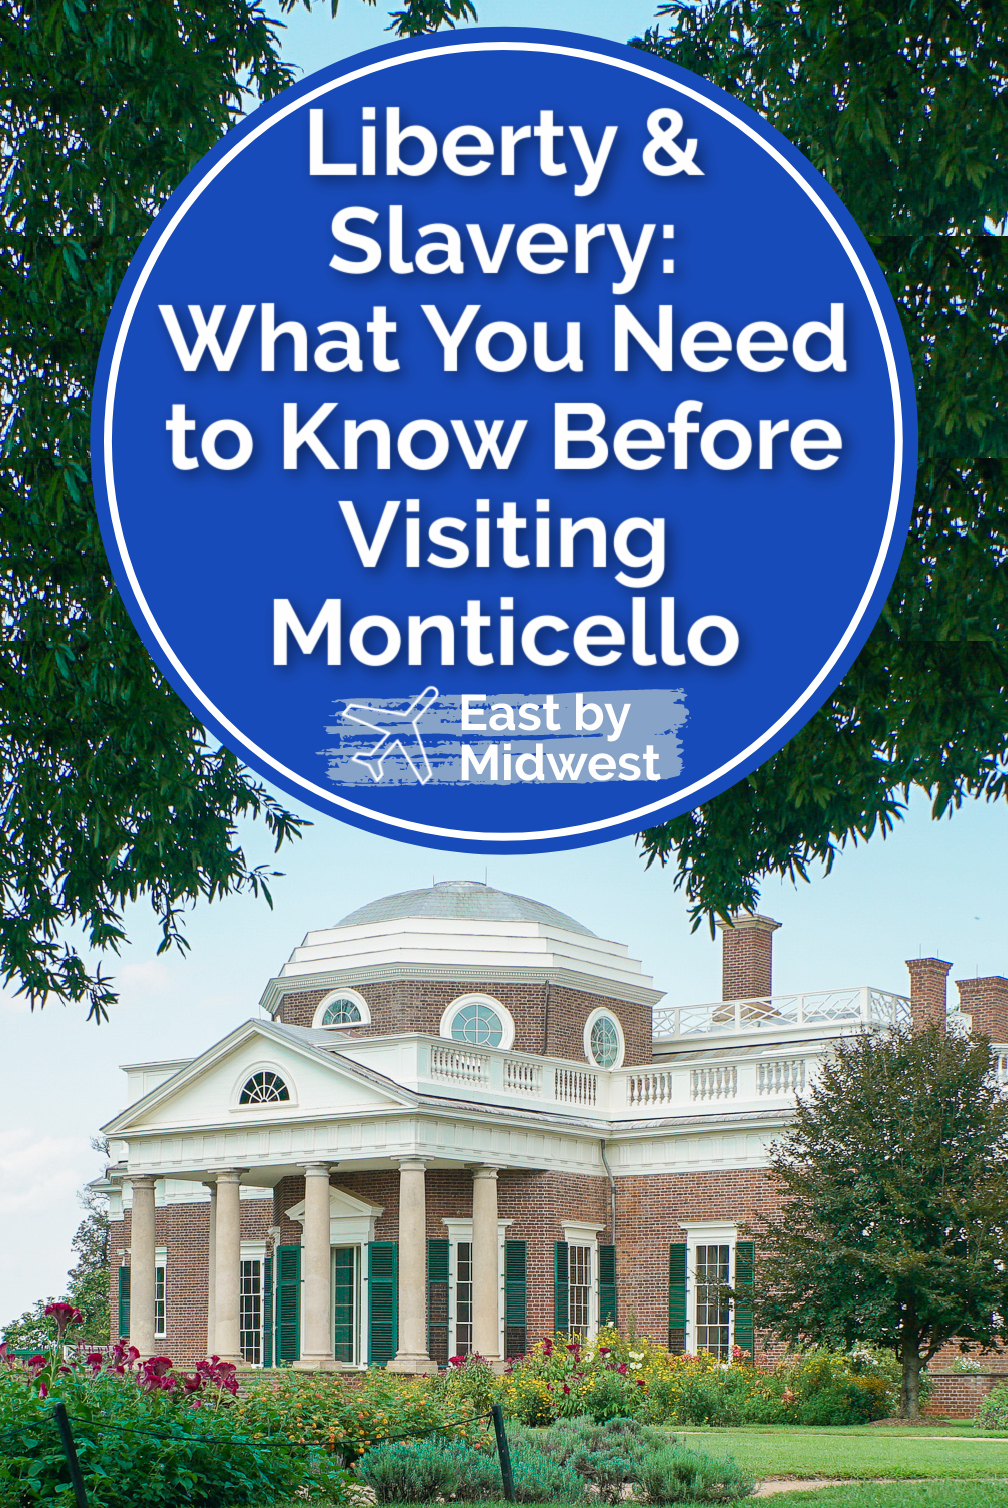 Liberty & Slavery: What You Need to Know Before Visiting Monticello